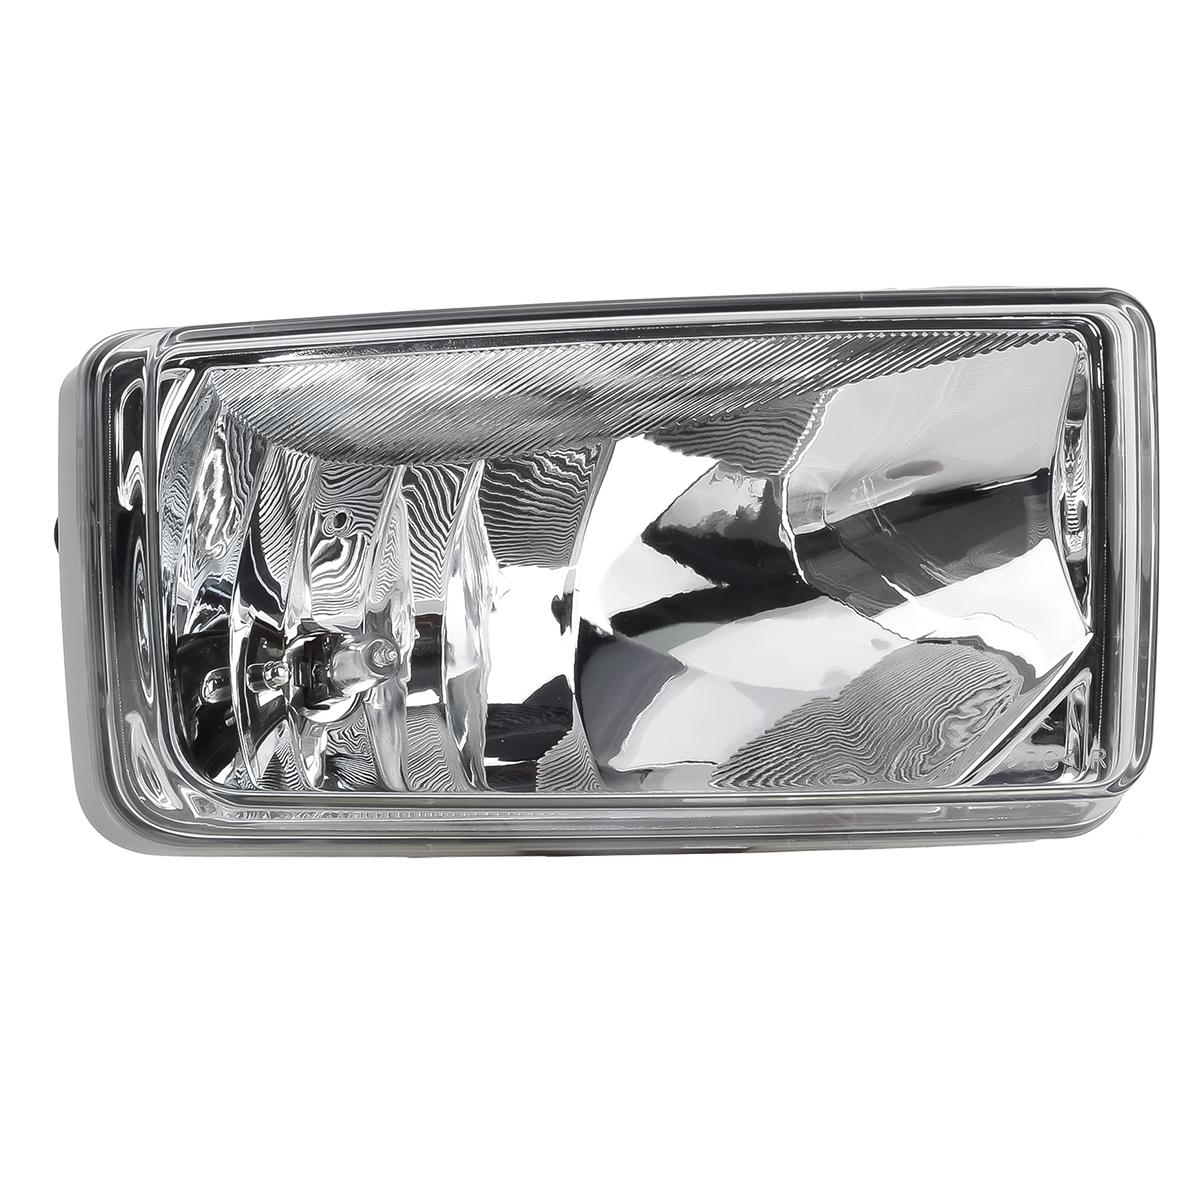 For Chevy Avalanche Silverado Suburban Clear Lens Chrome